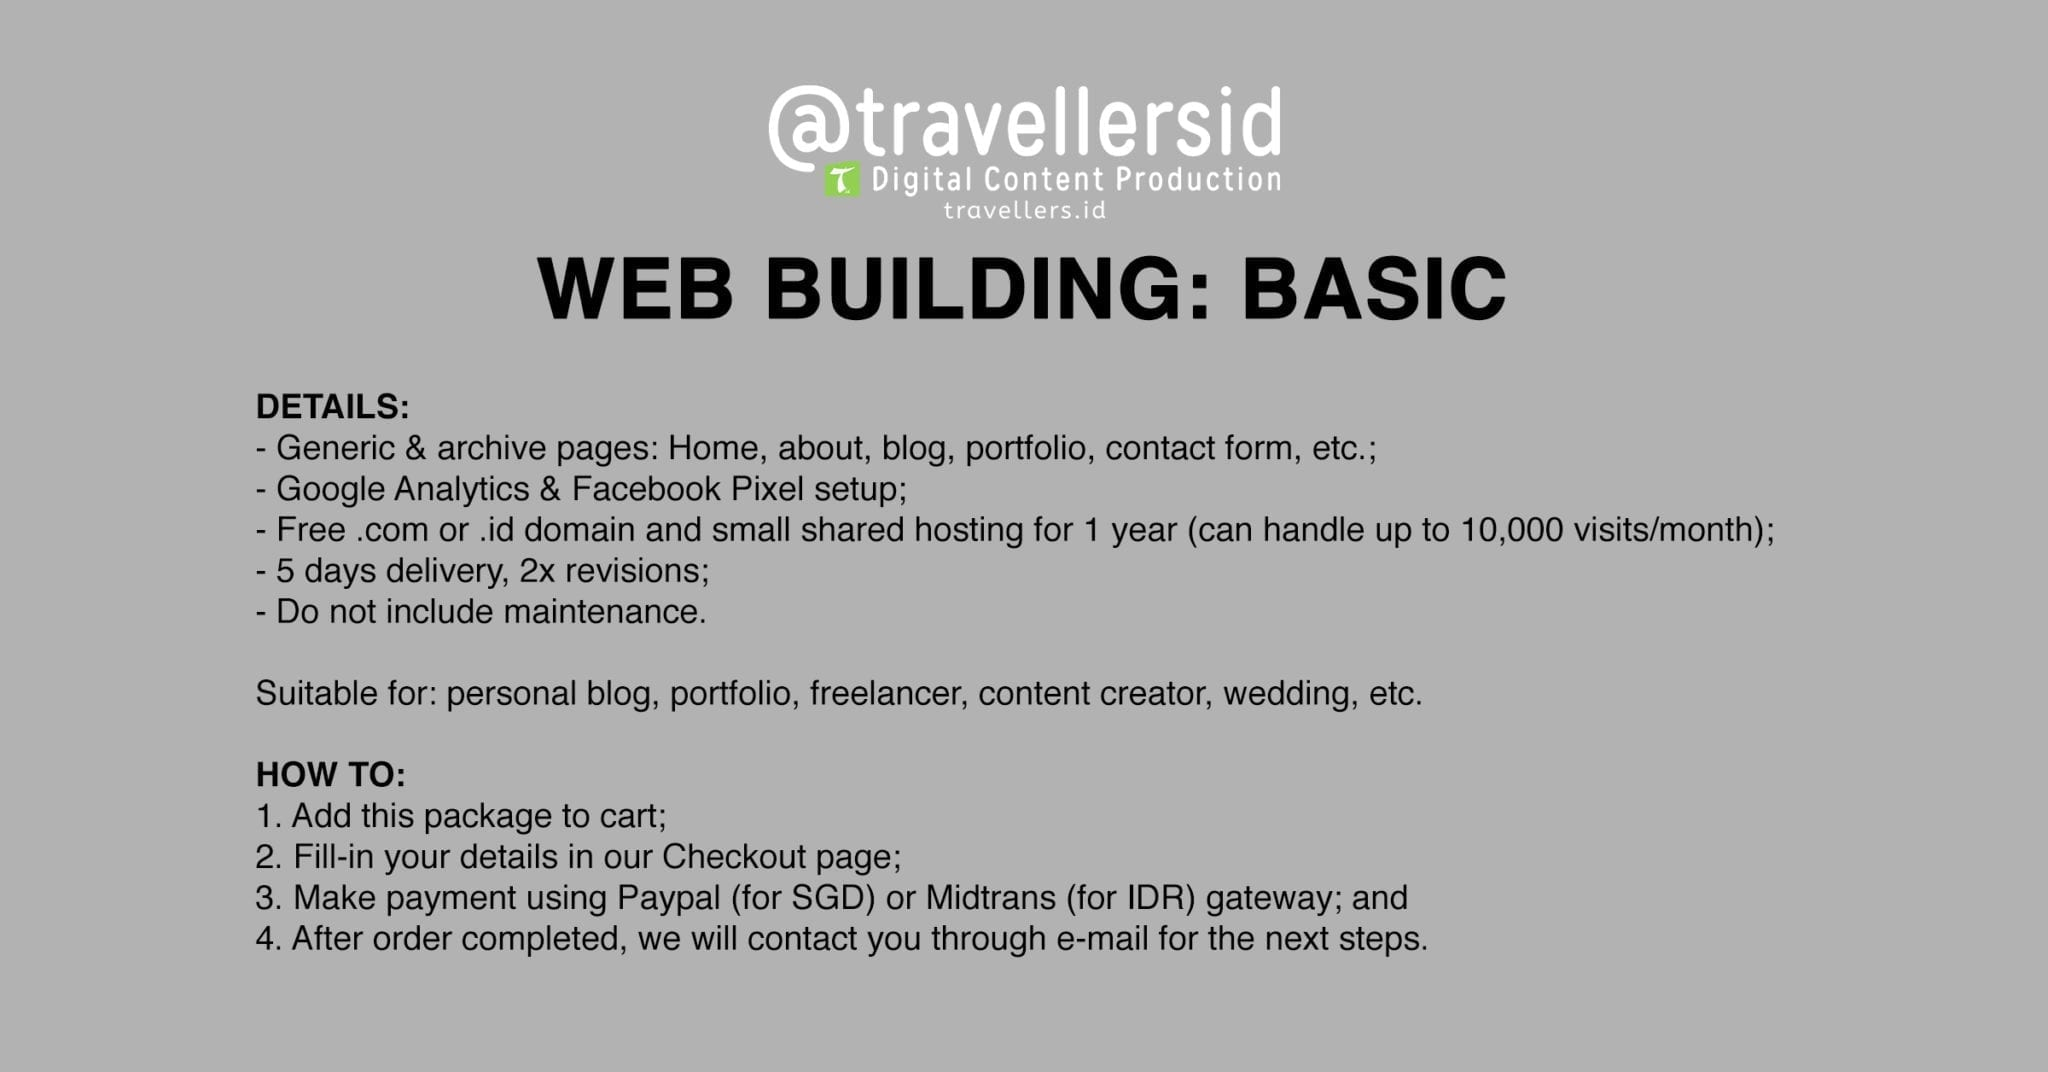 @TravellersID Web Building Services - Basic